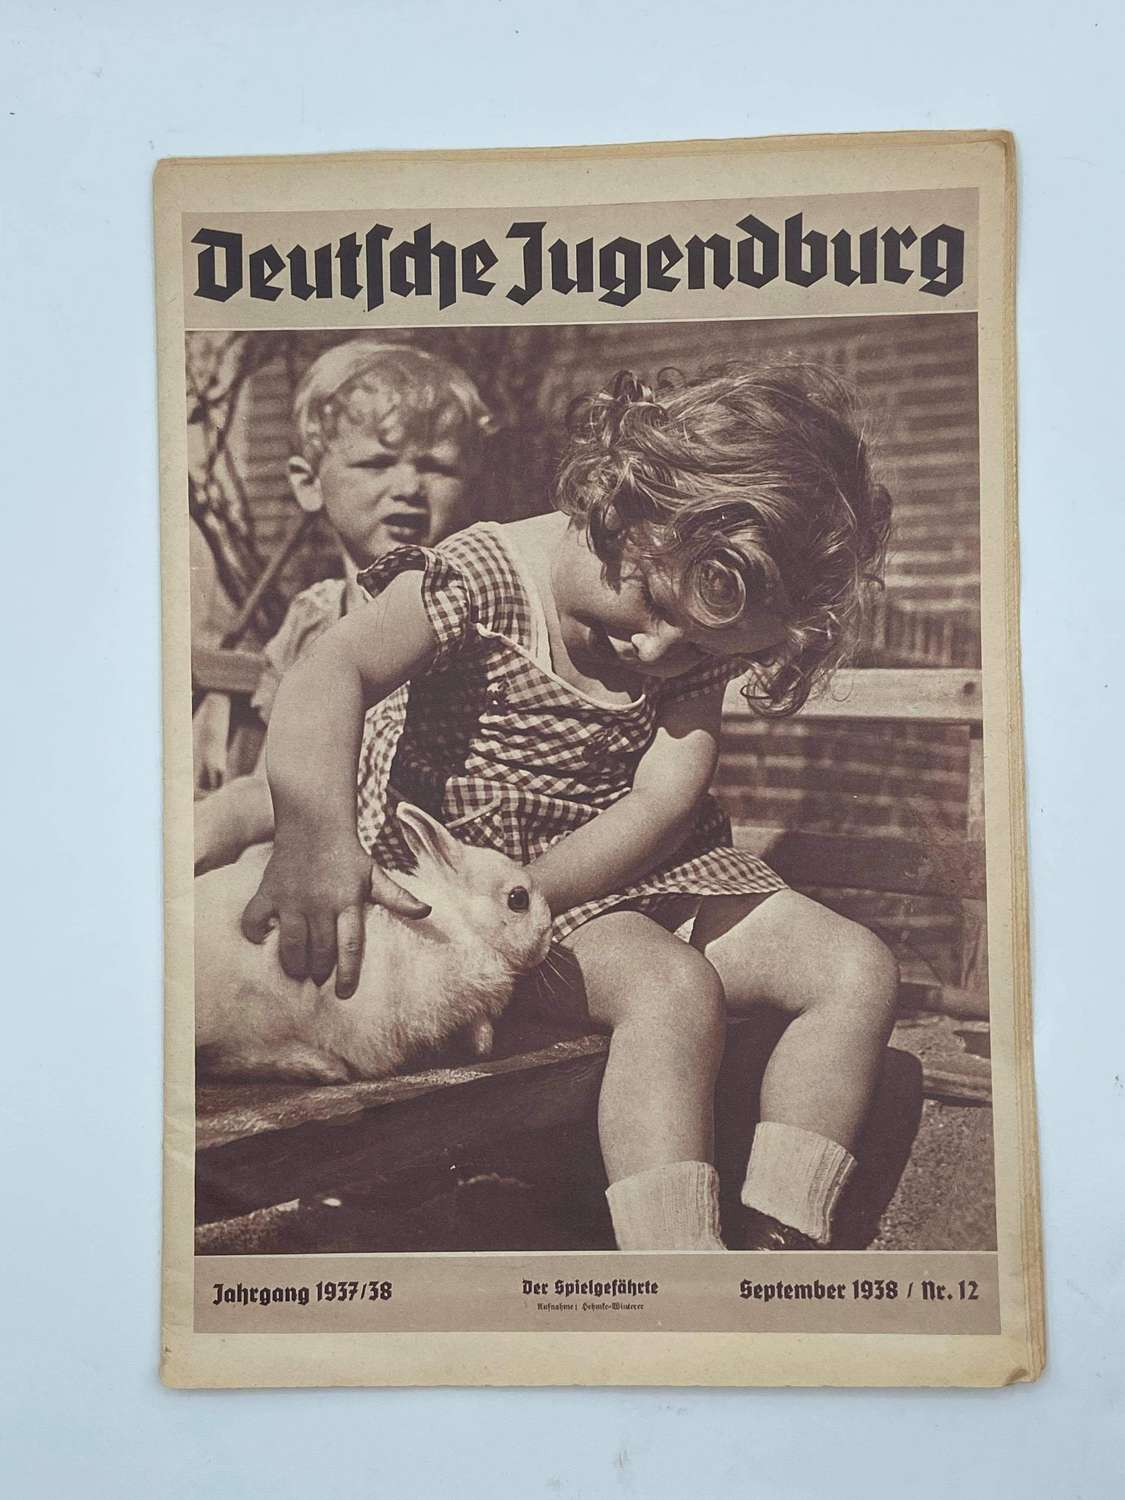 WW2 German Hitler Youth 1938 Magazine: Adverts, Photos & Text